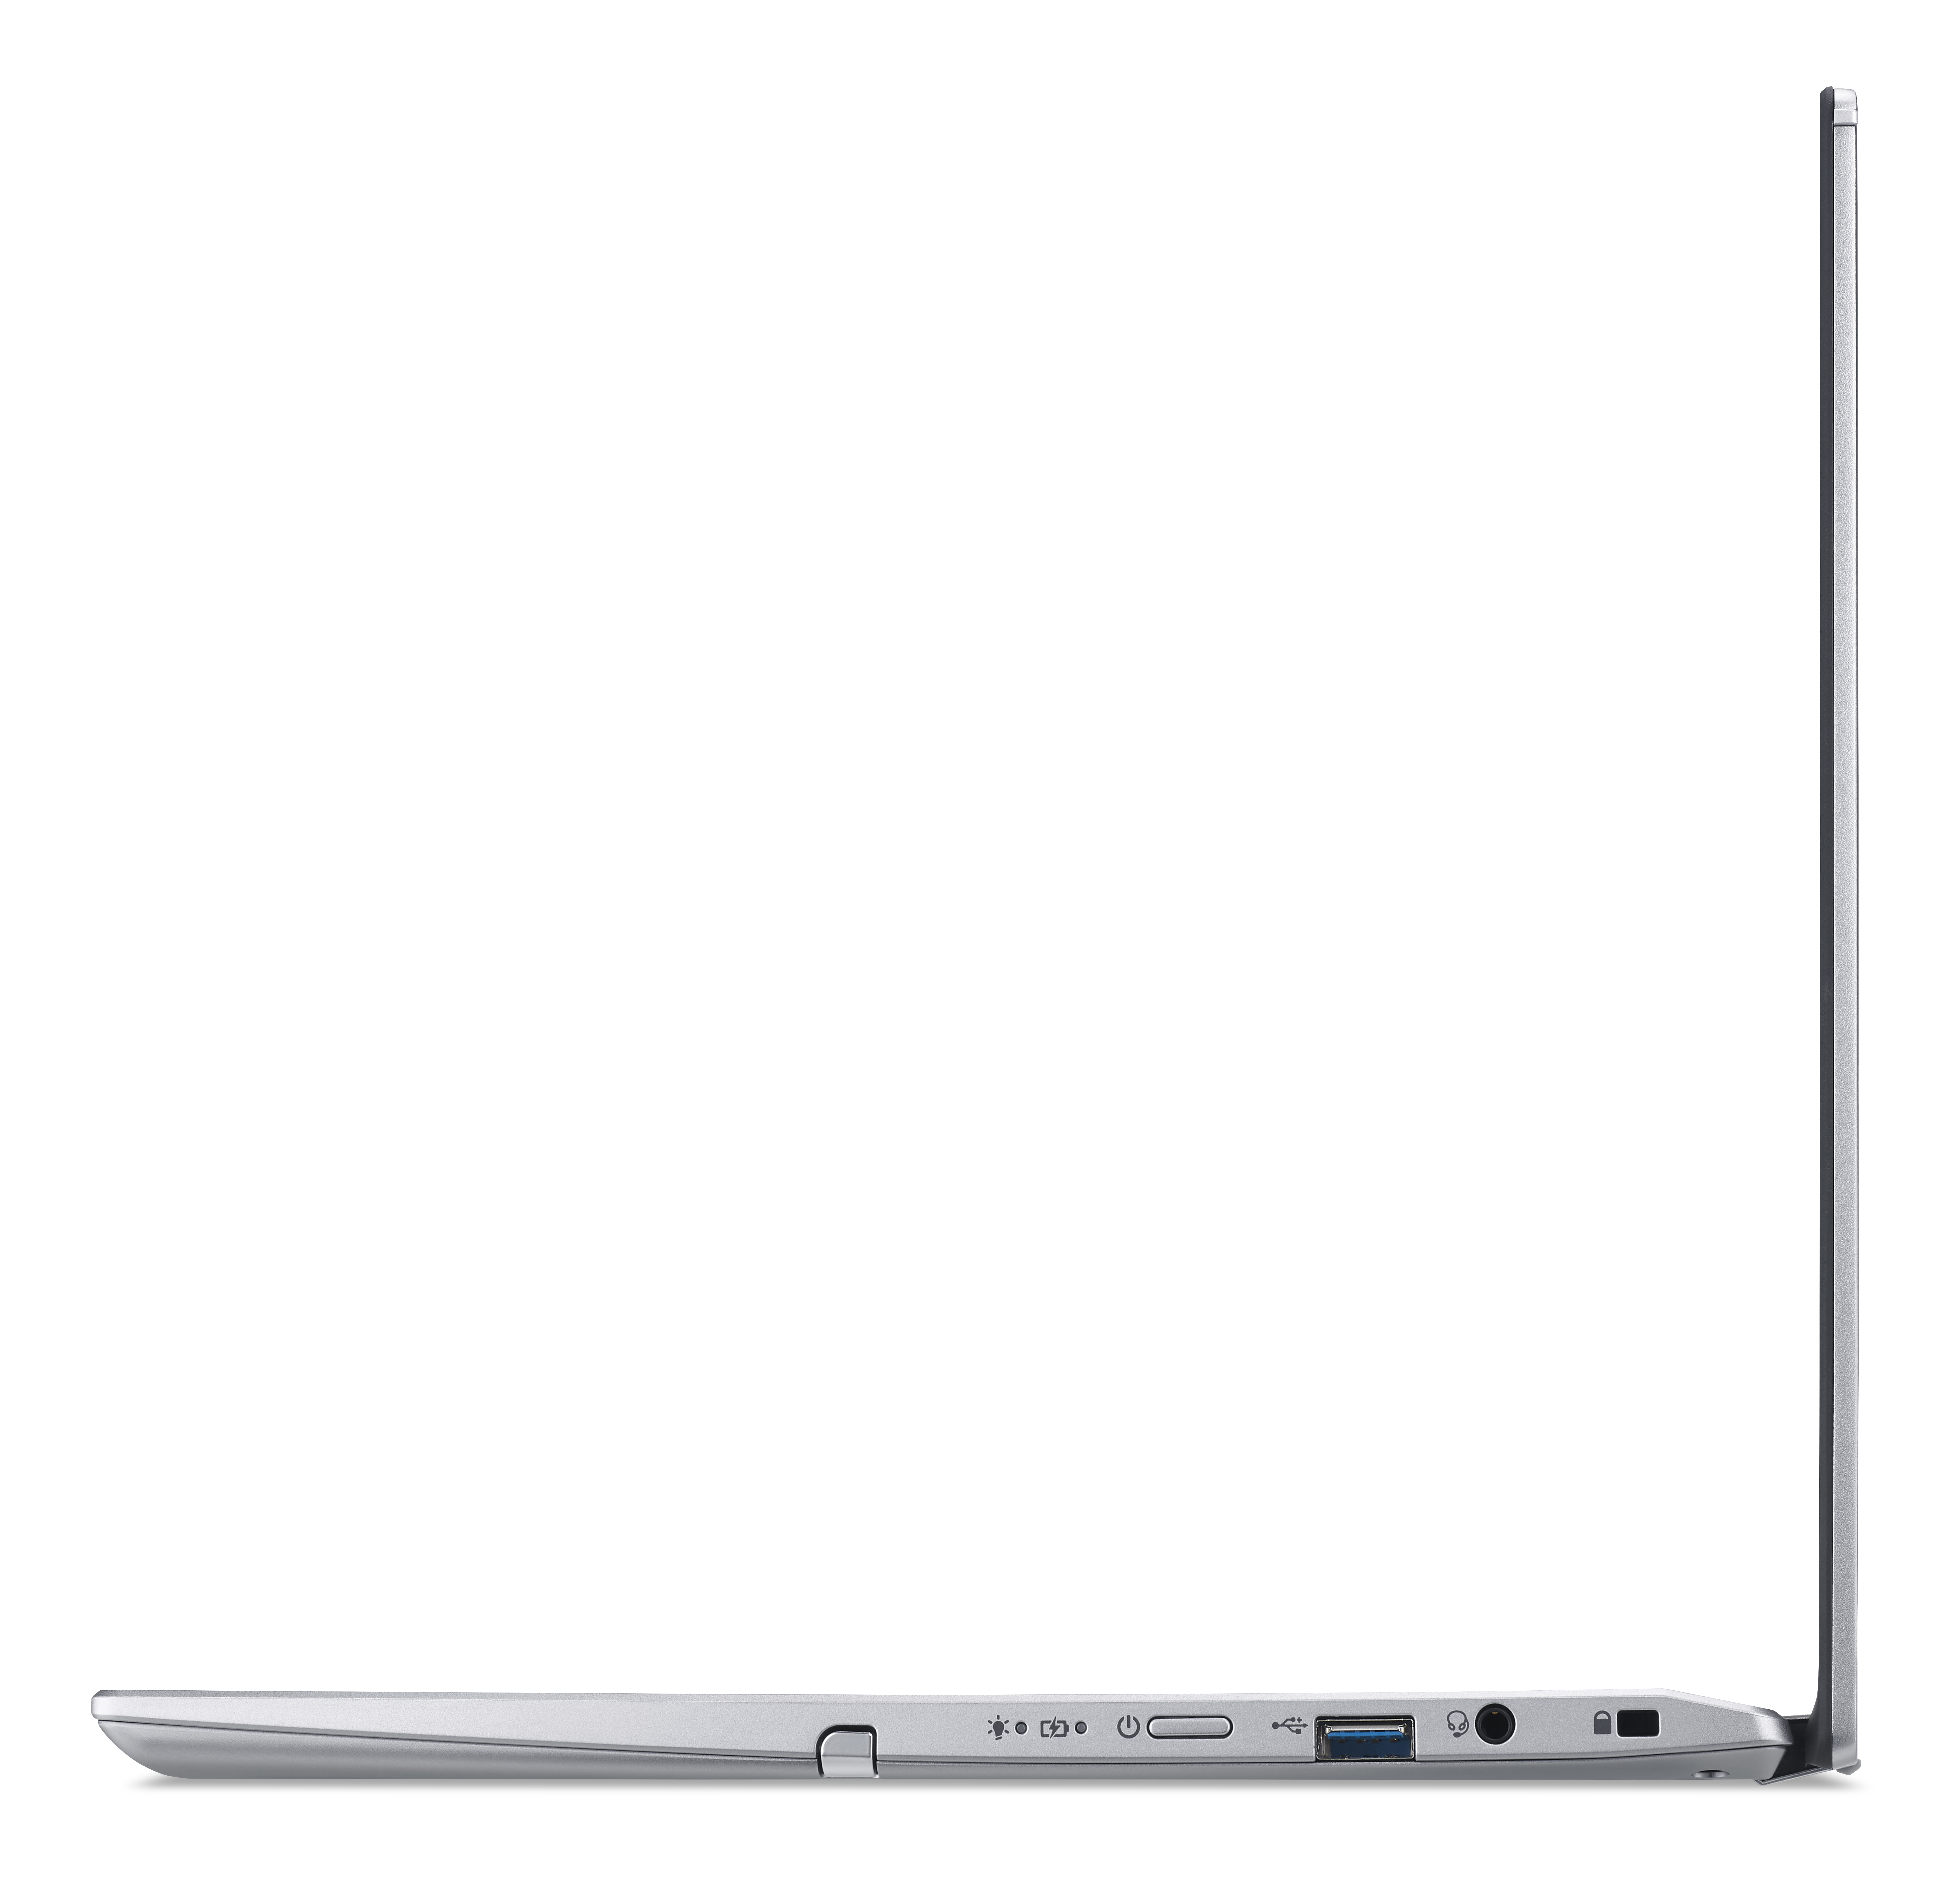 Acer Spin SP314-54N-57VR - 14i FHD Touch IPS - Intel Core i5-1035G4 - 8GB - 512GB PCIe NVMe SSD - Intel Iris Plus Graphics - Intel Wi-Fi 6 AX 201 - Win10Home - QWERTY